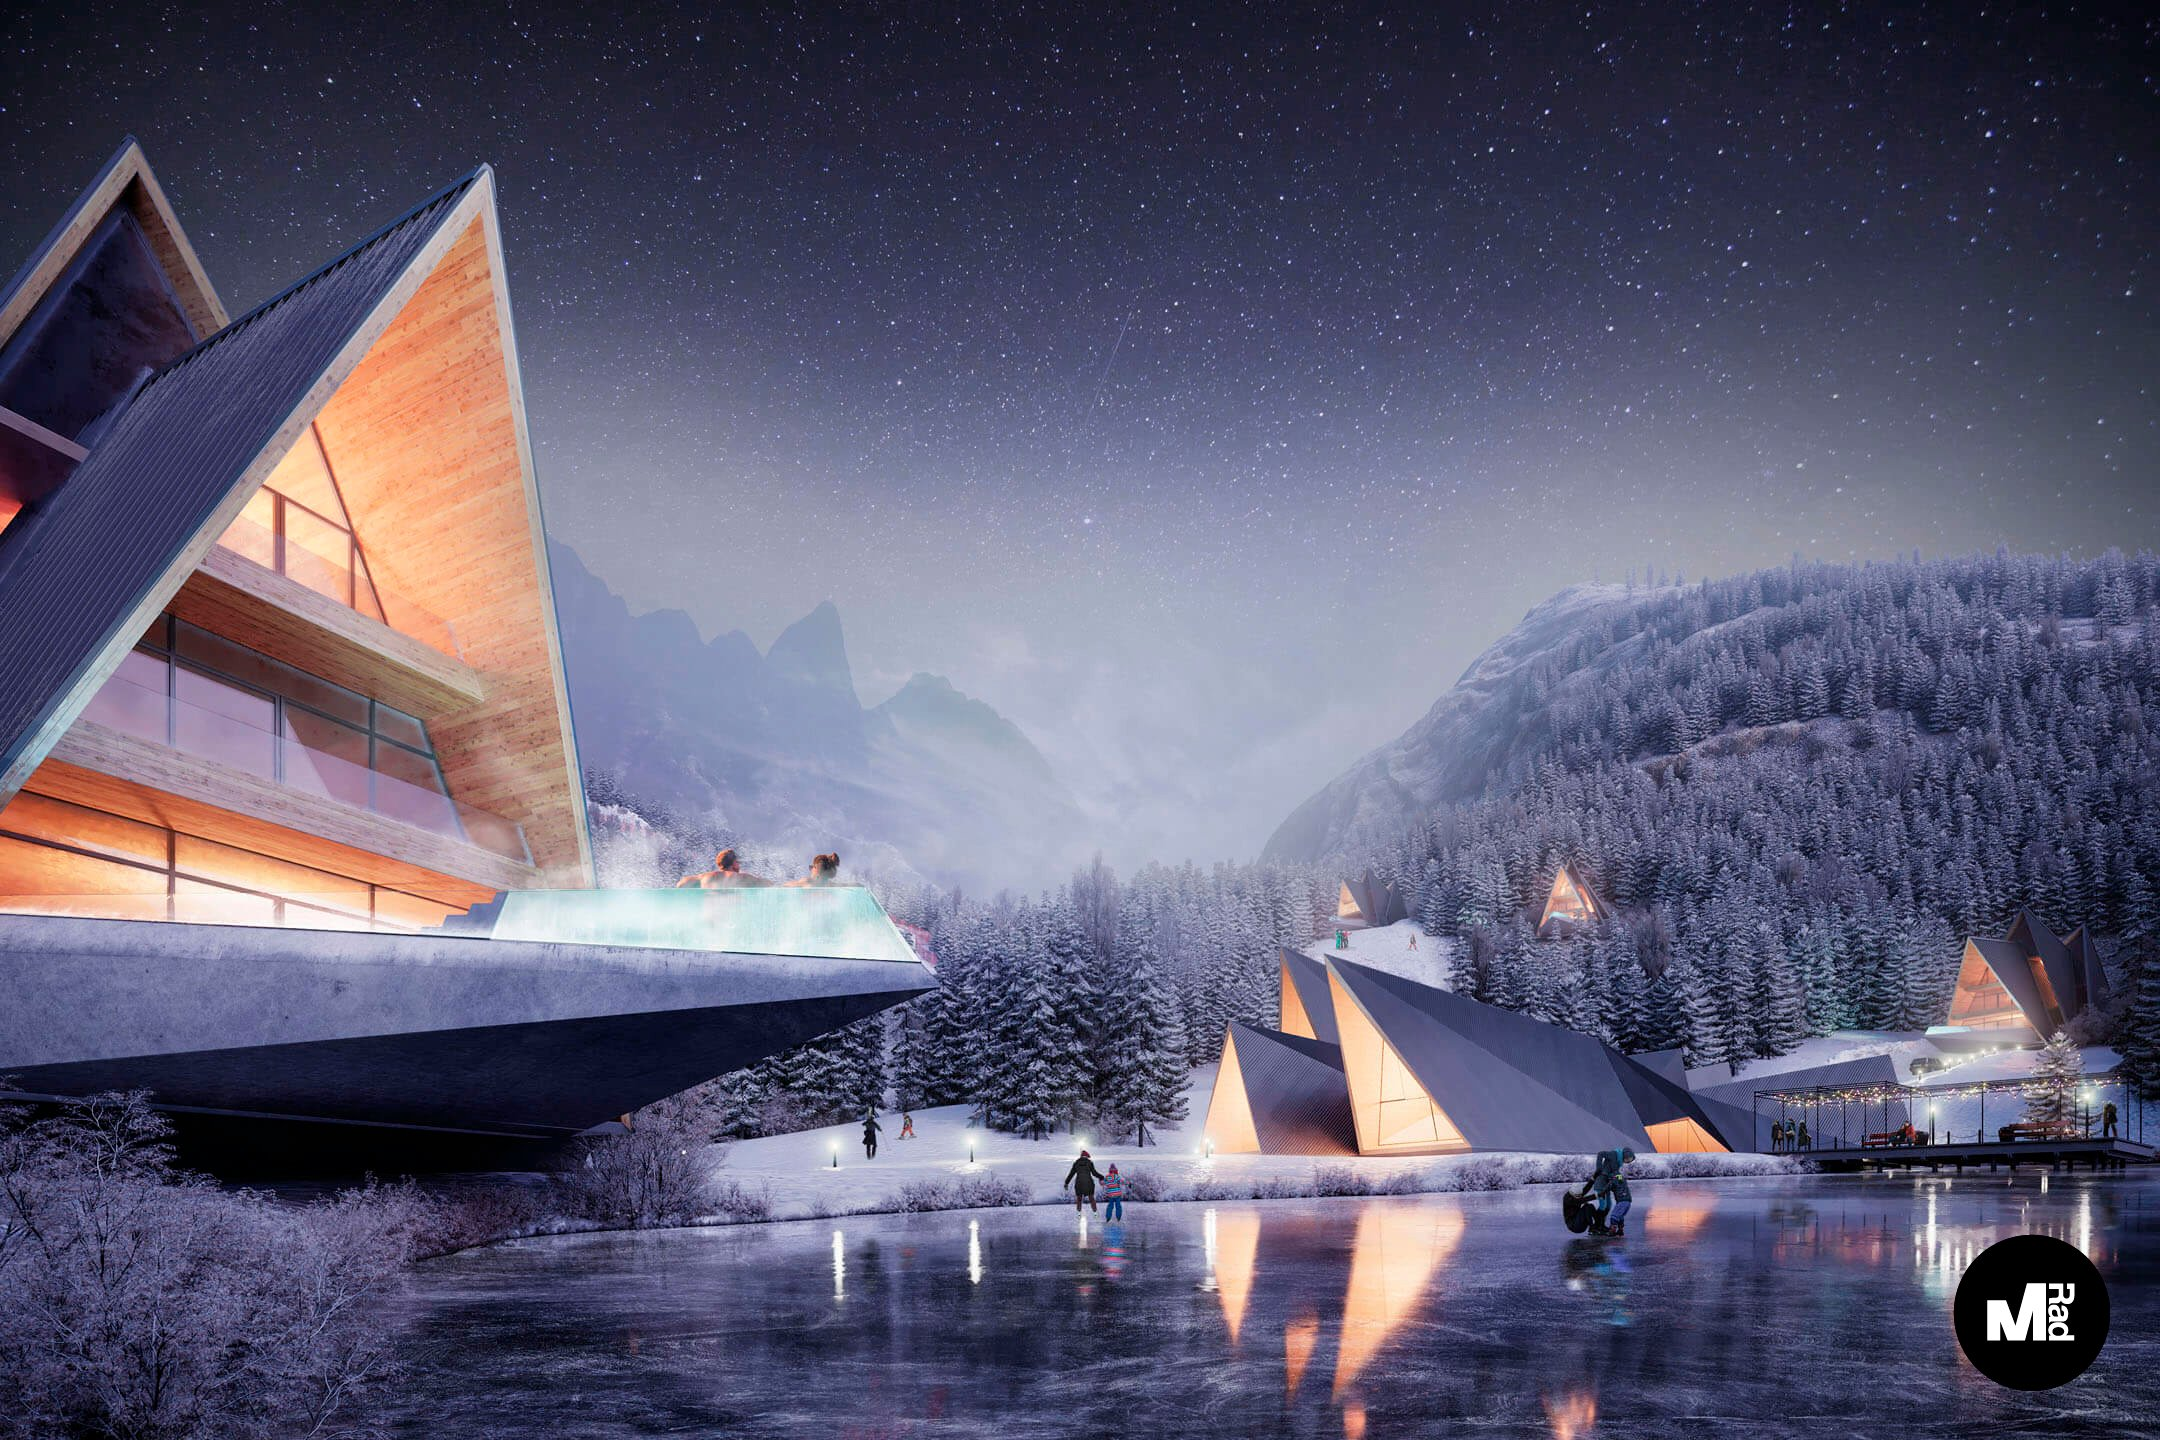 Photoreal Exterior Visualization for a Resort in Winter